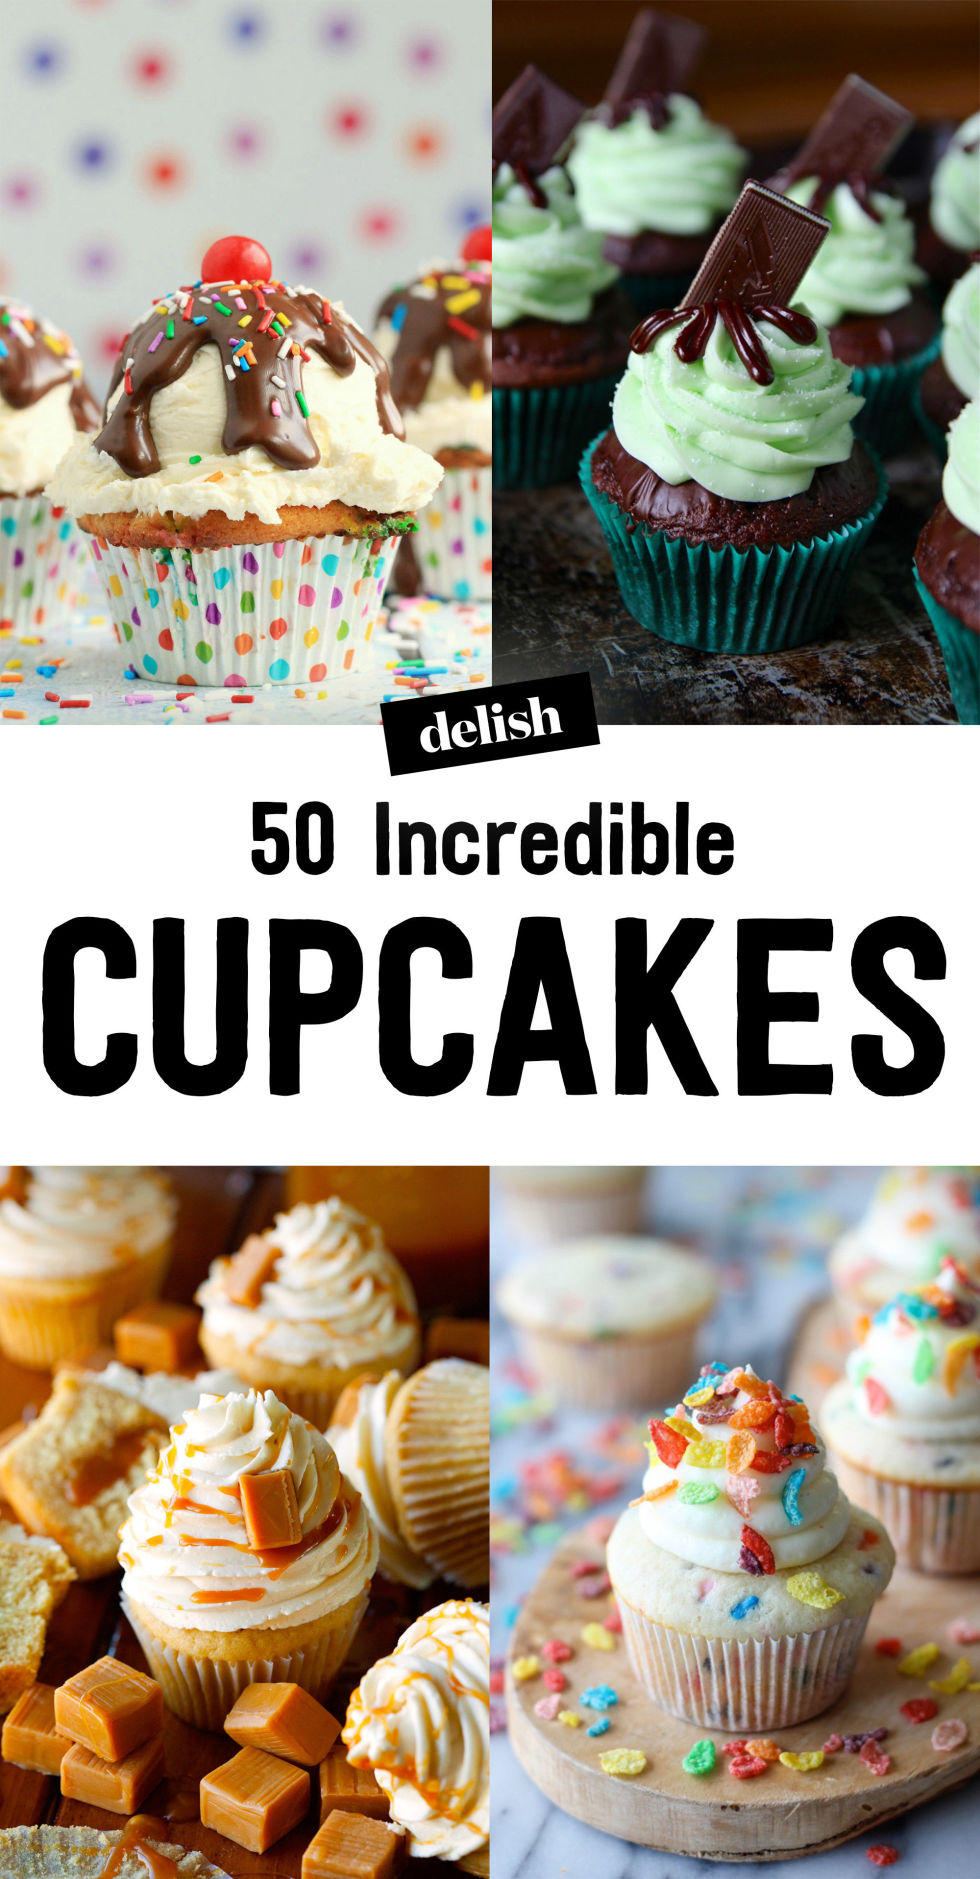 70+ Easy Cupcake Recipes From Scratch  How To Make Homemade Cupcakes   Delish